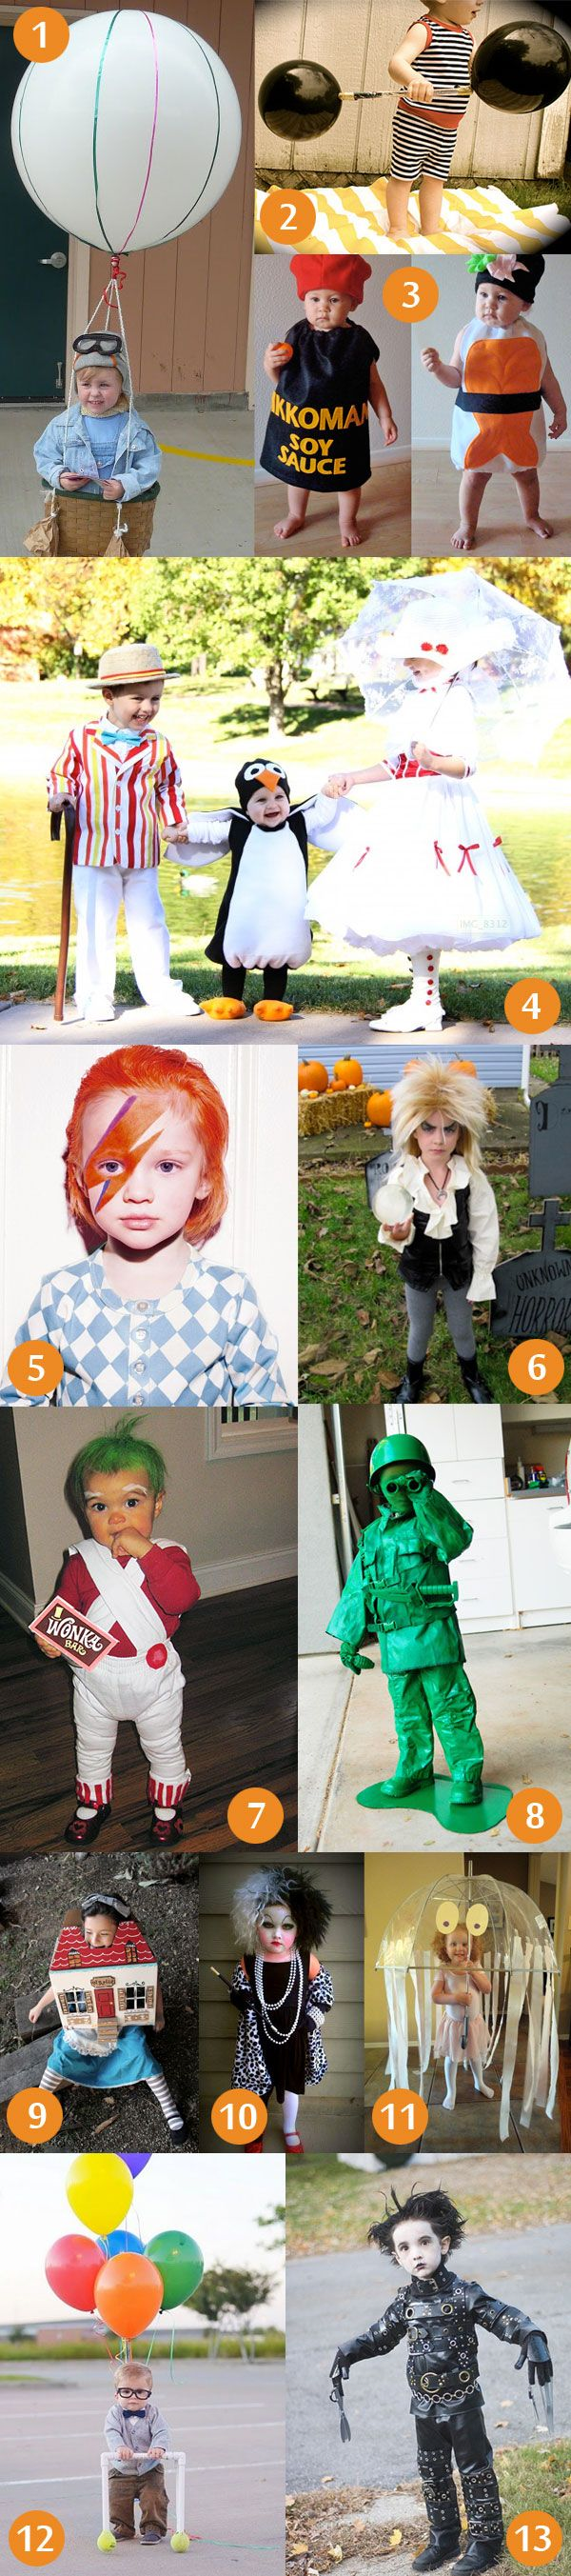 Halloween: unusual creative costumes, ideas for halloween fancy dress  #halloween #costume